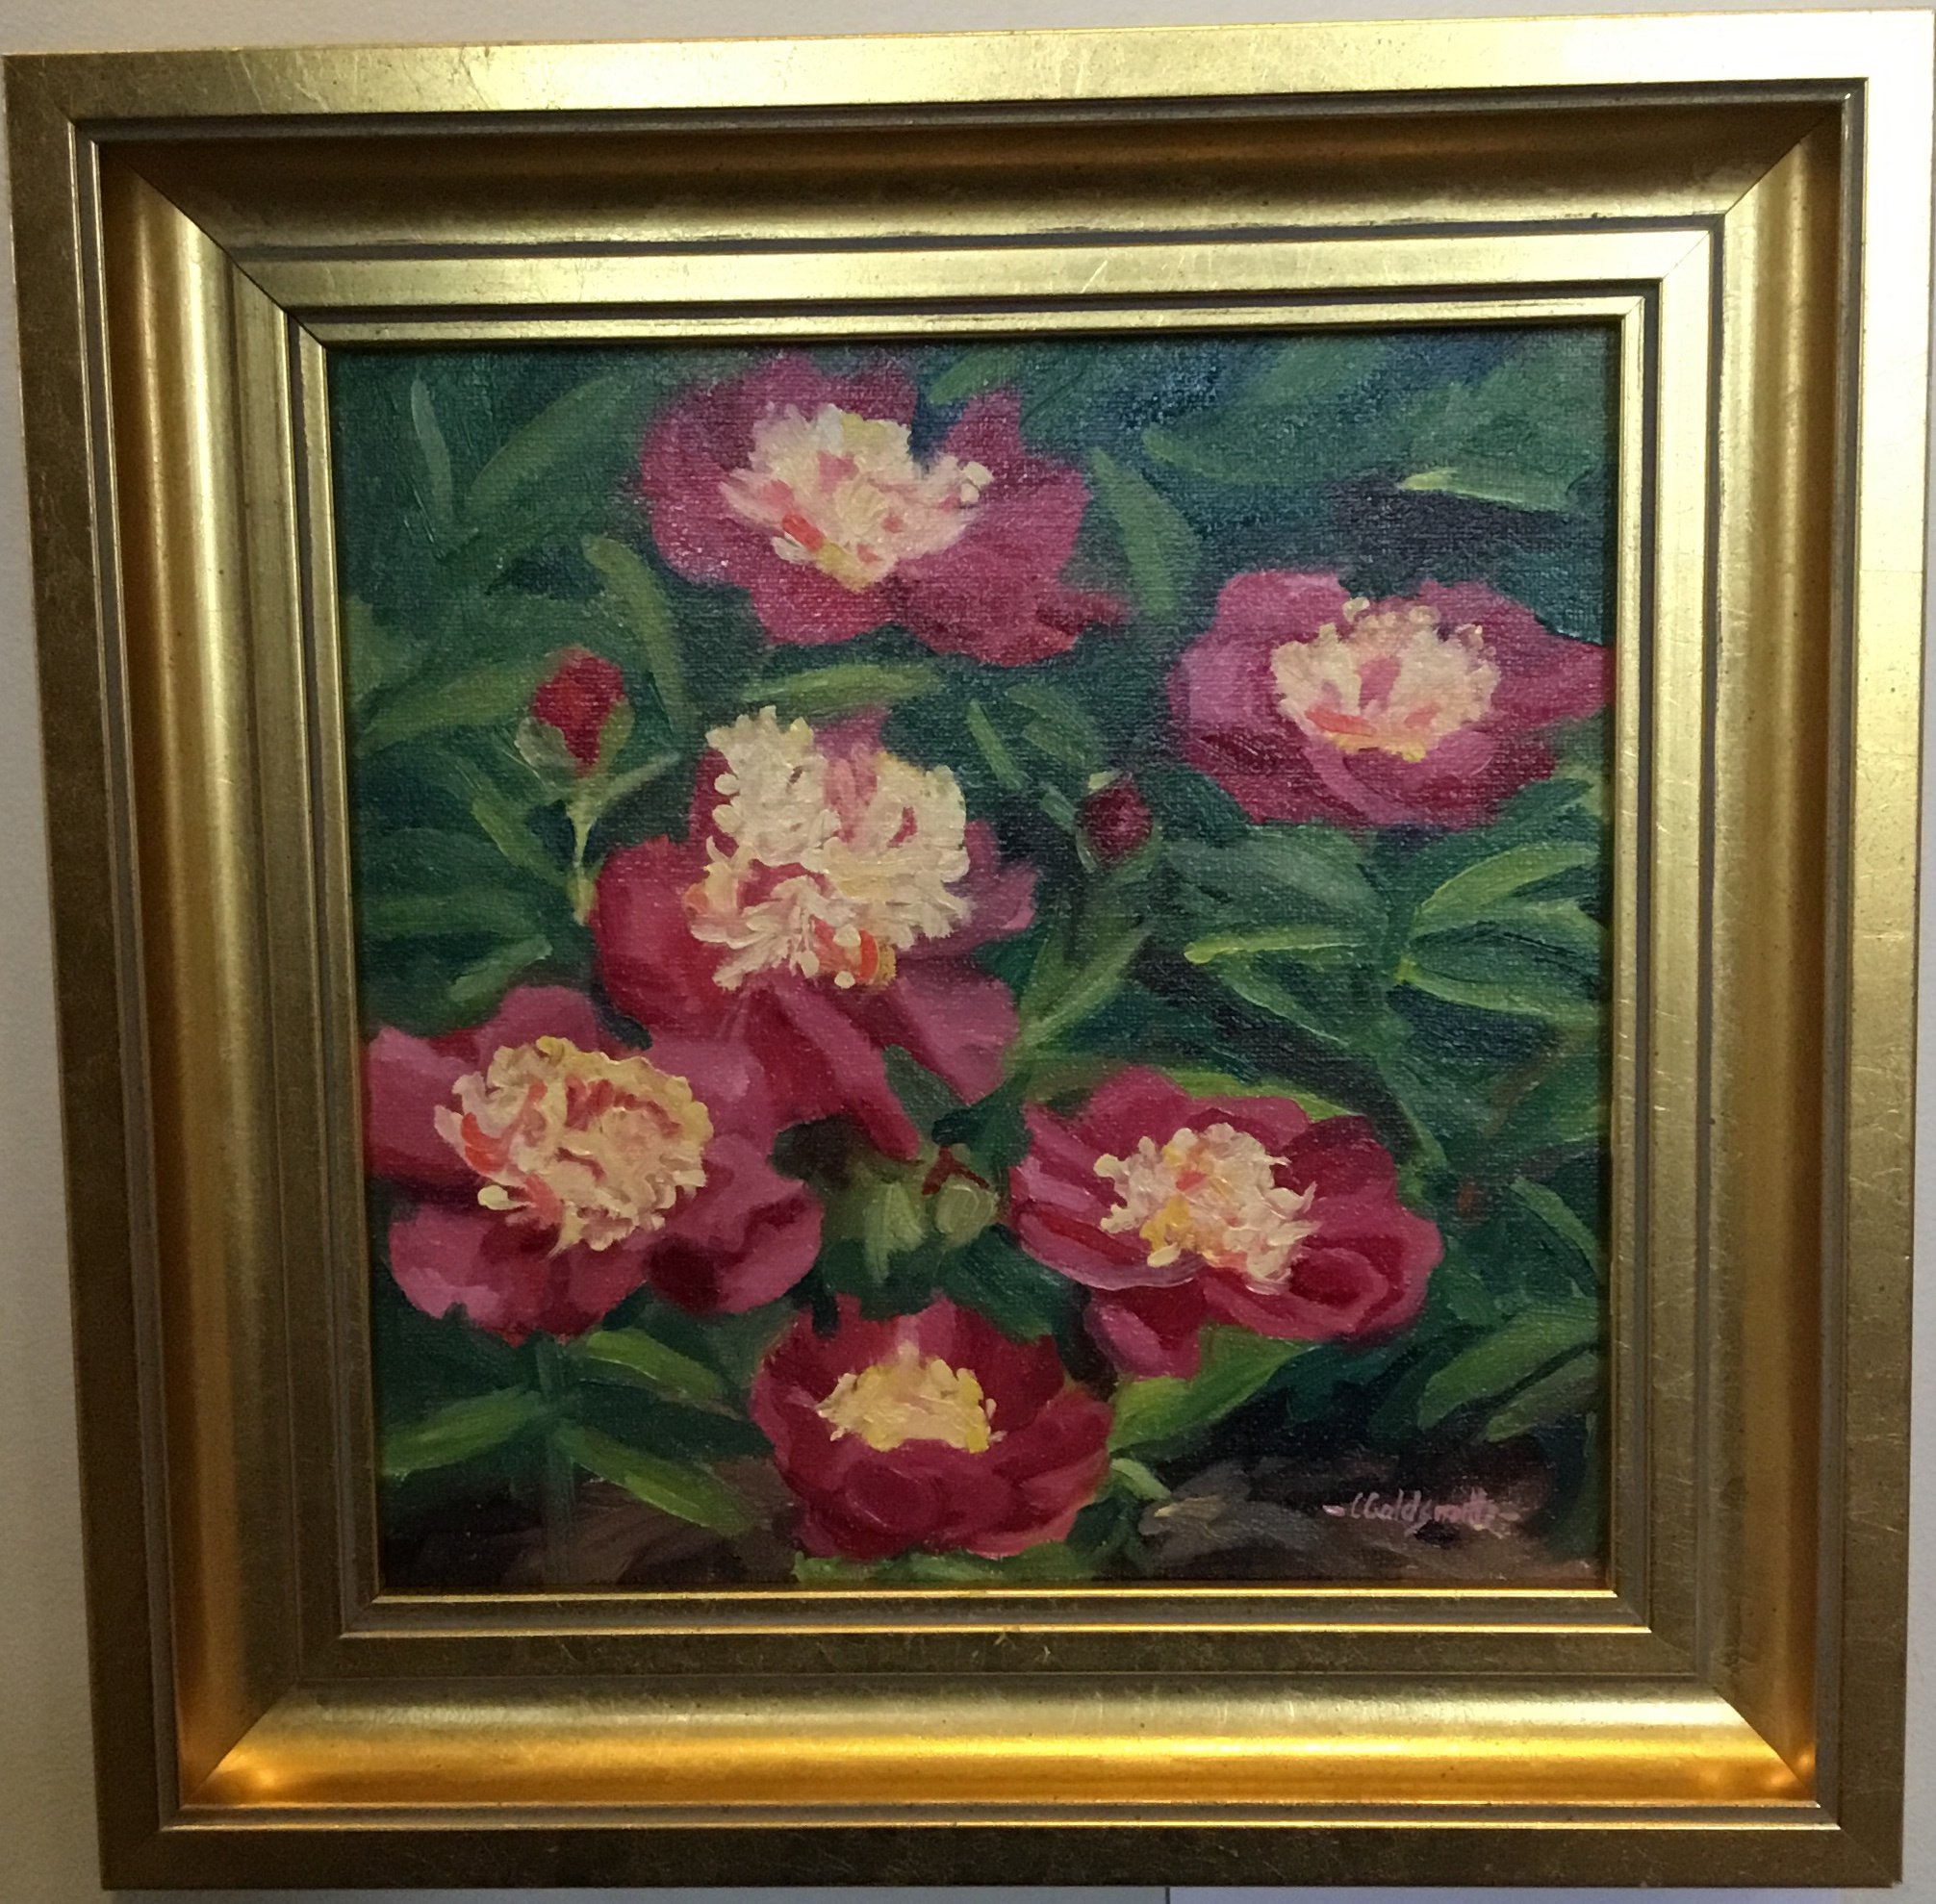 "Reine Supreme Peonies Oil on linen panel 8"" X 18"" $275."